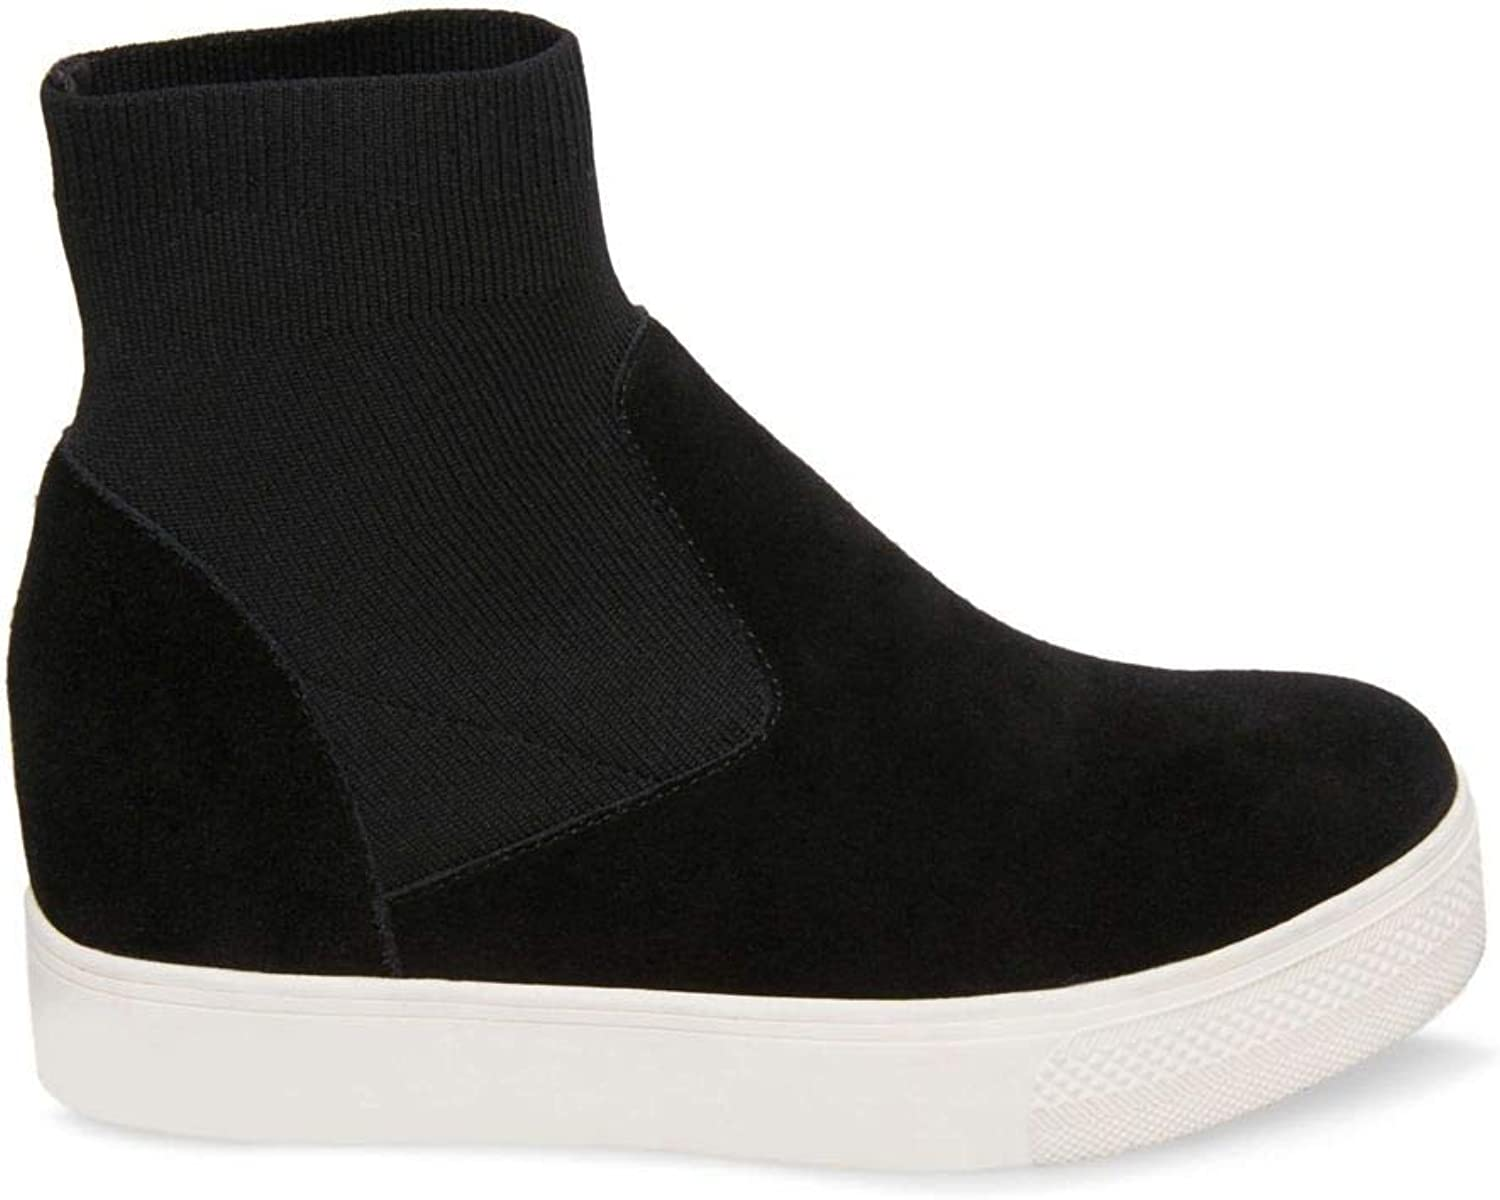 Steve Madden Women's Wilson shoes